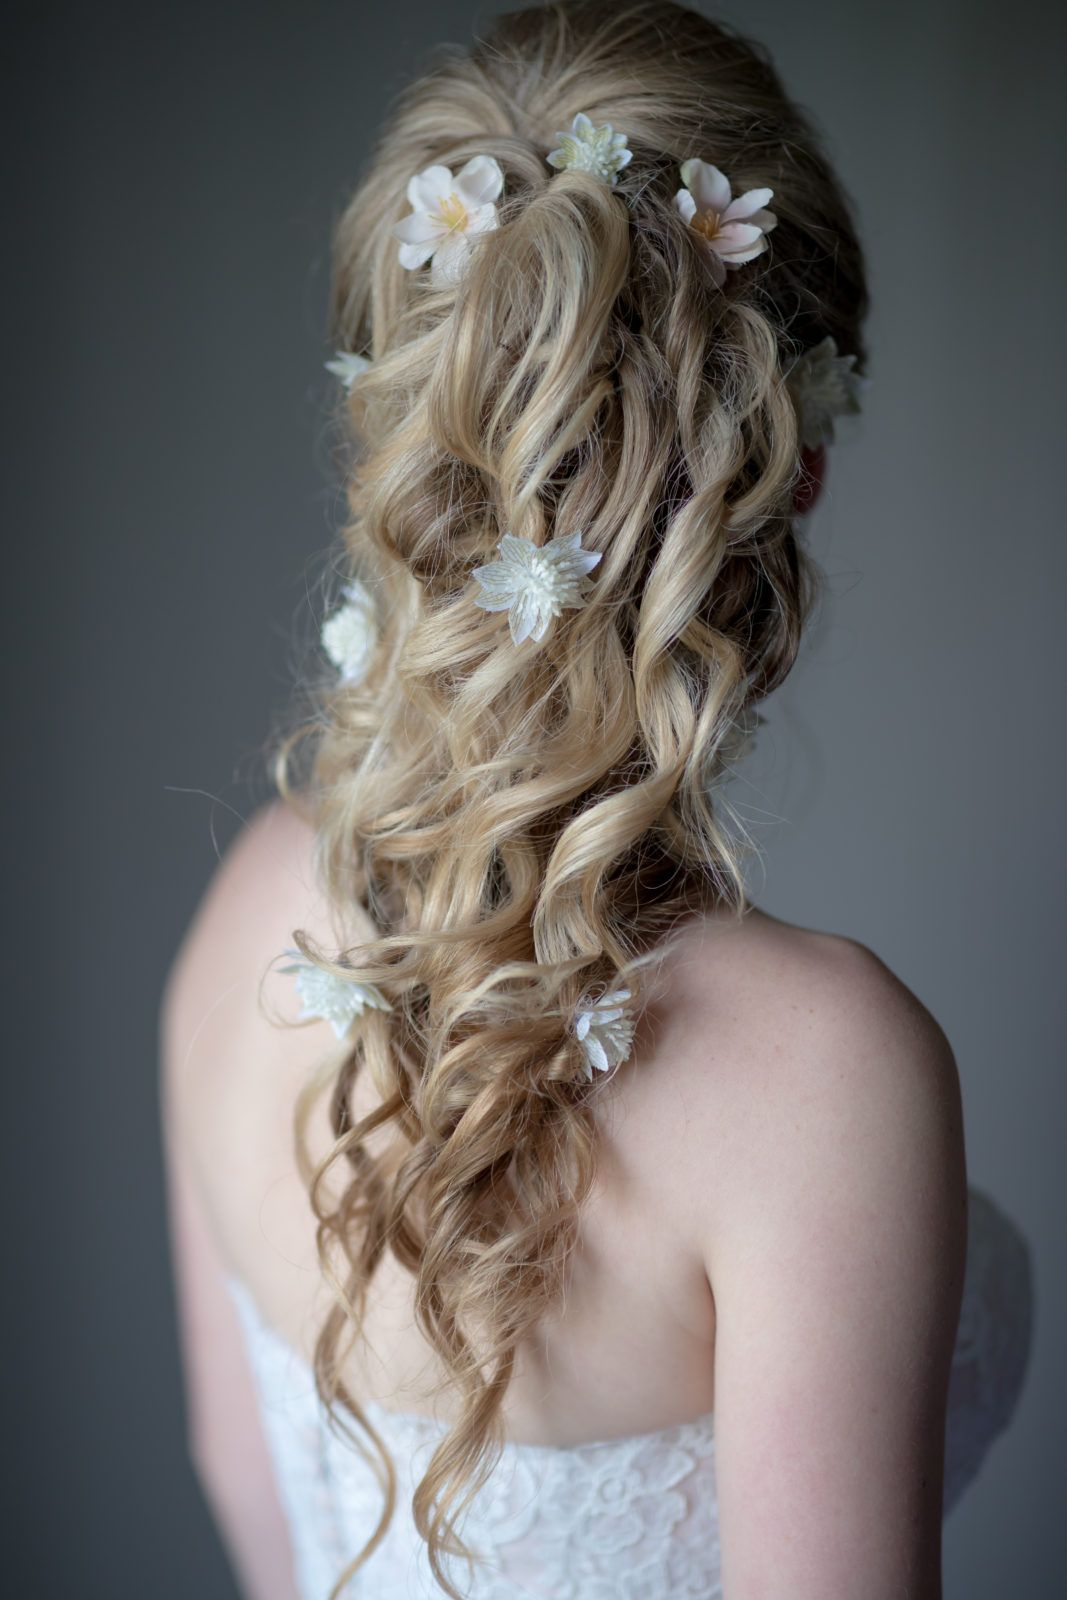 boho wedding hair | click here to see more wedding images